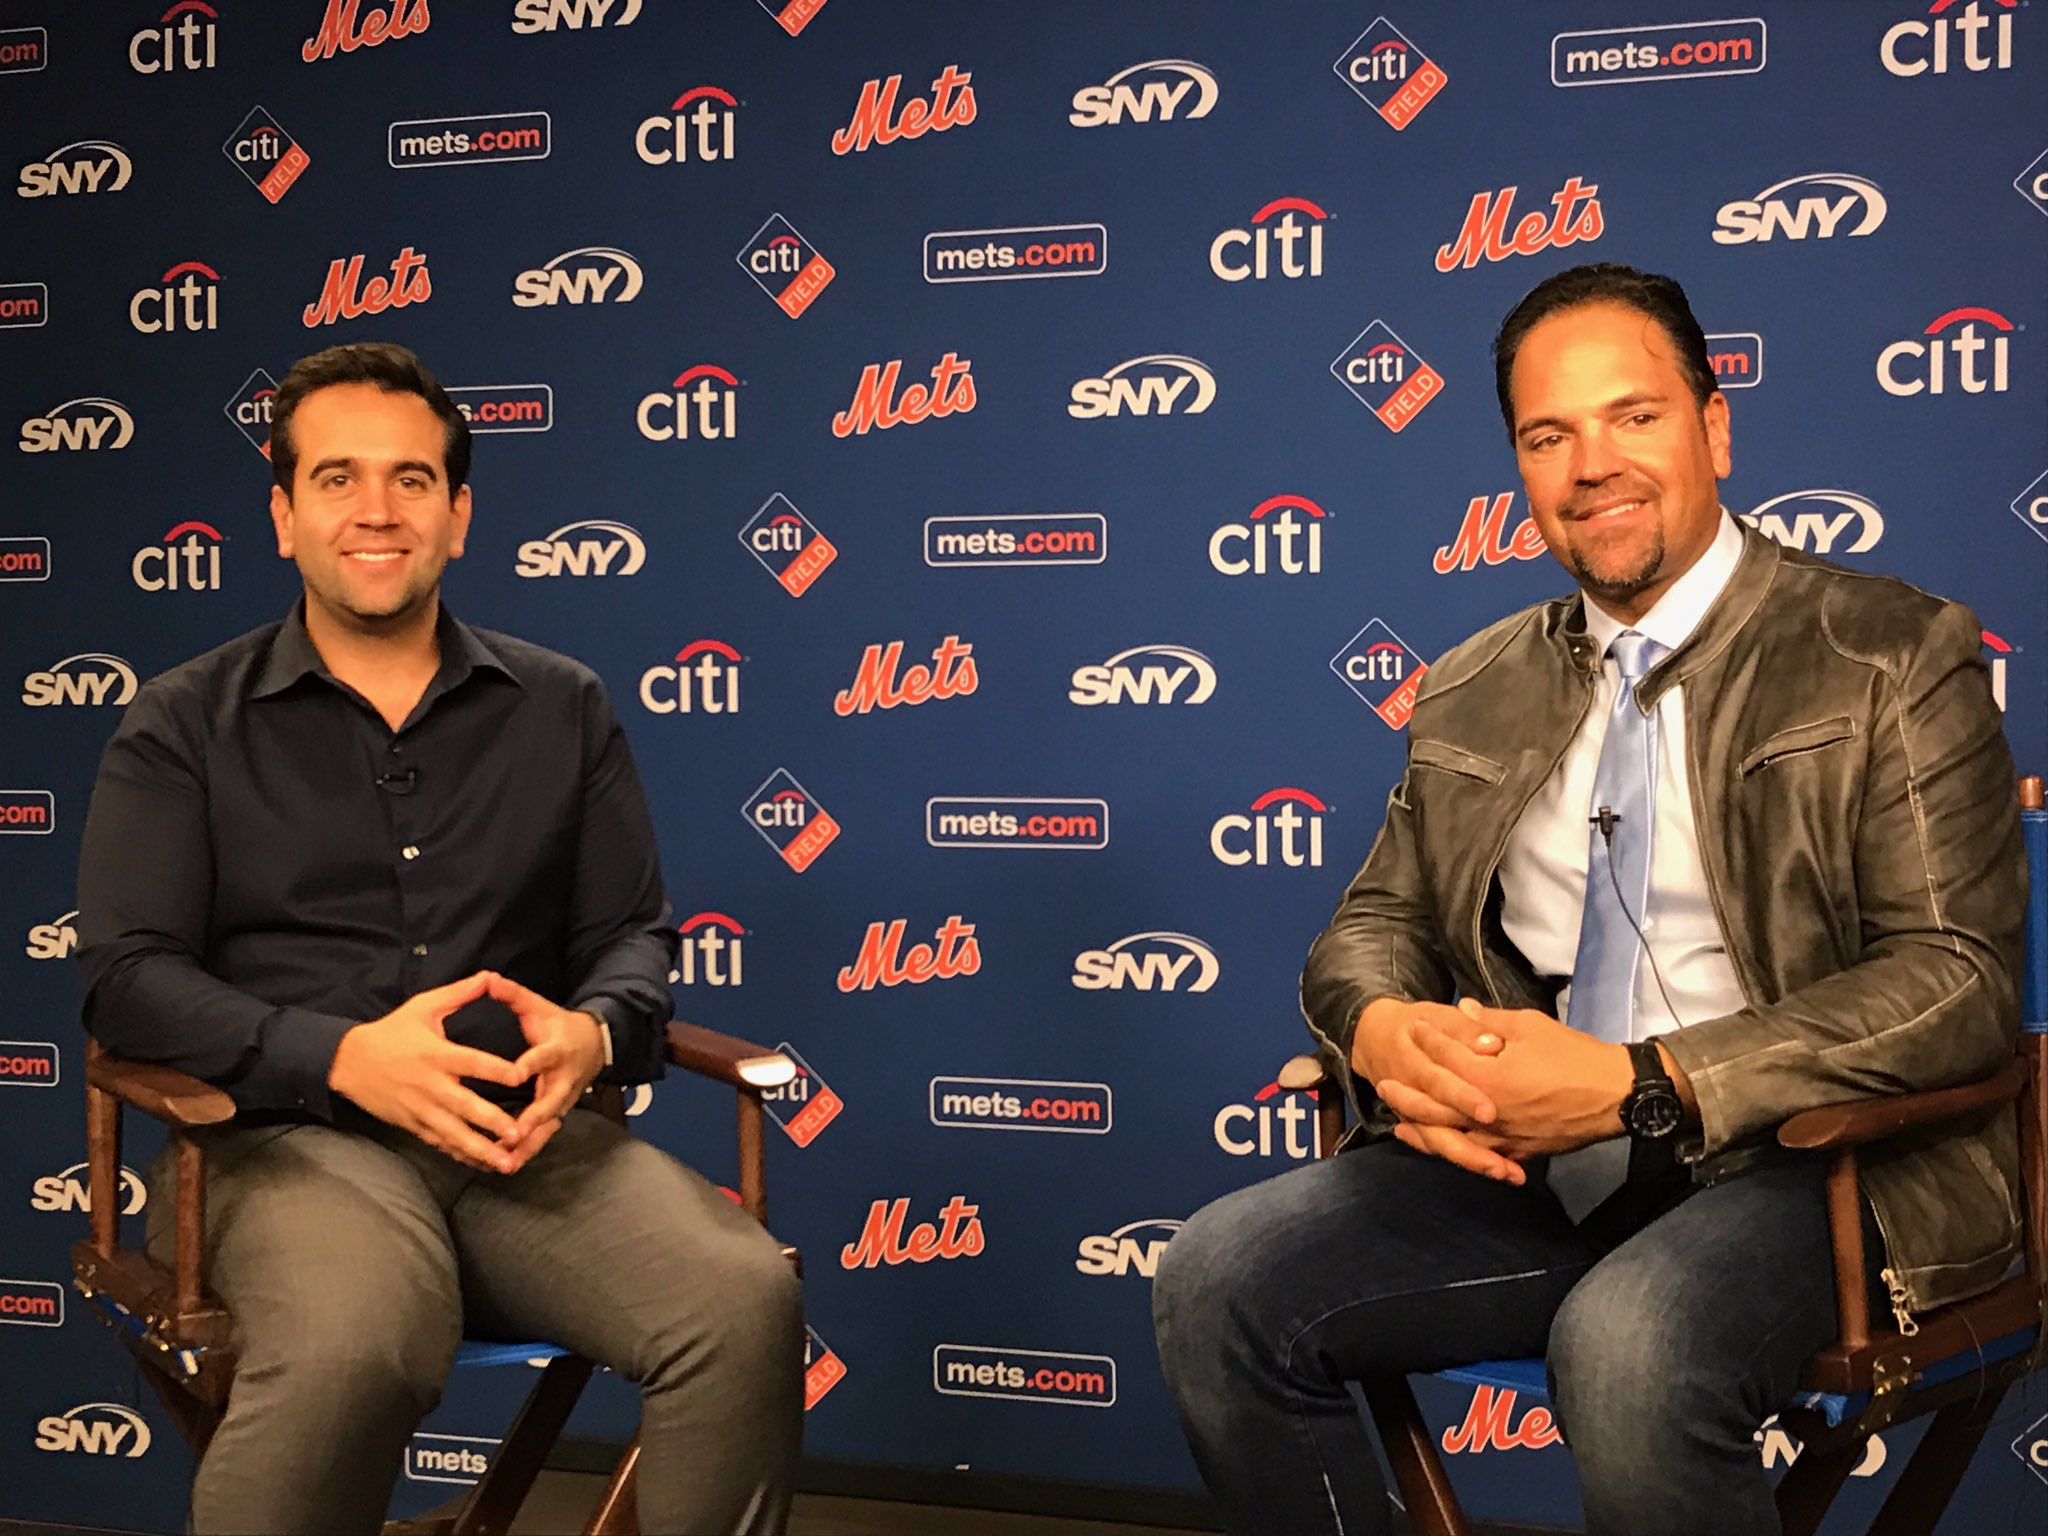 We are live on Facebook with @mikepiazza31 right now! Tune in �� https://t.co/4TFGLh6grI https://t.co/slrlbvTDr2